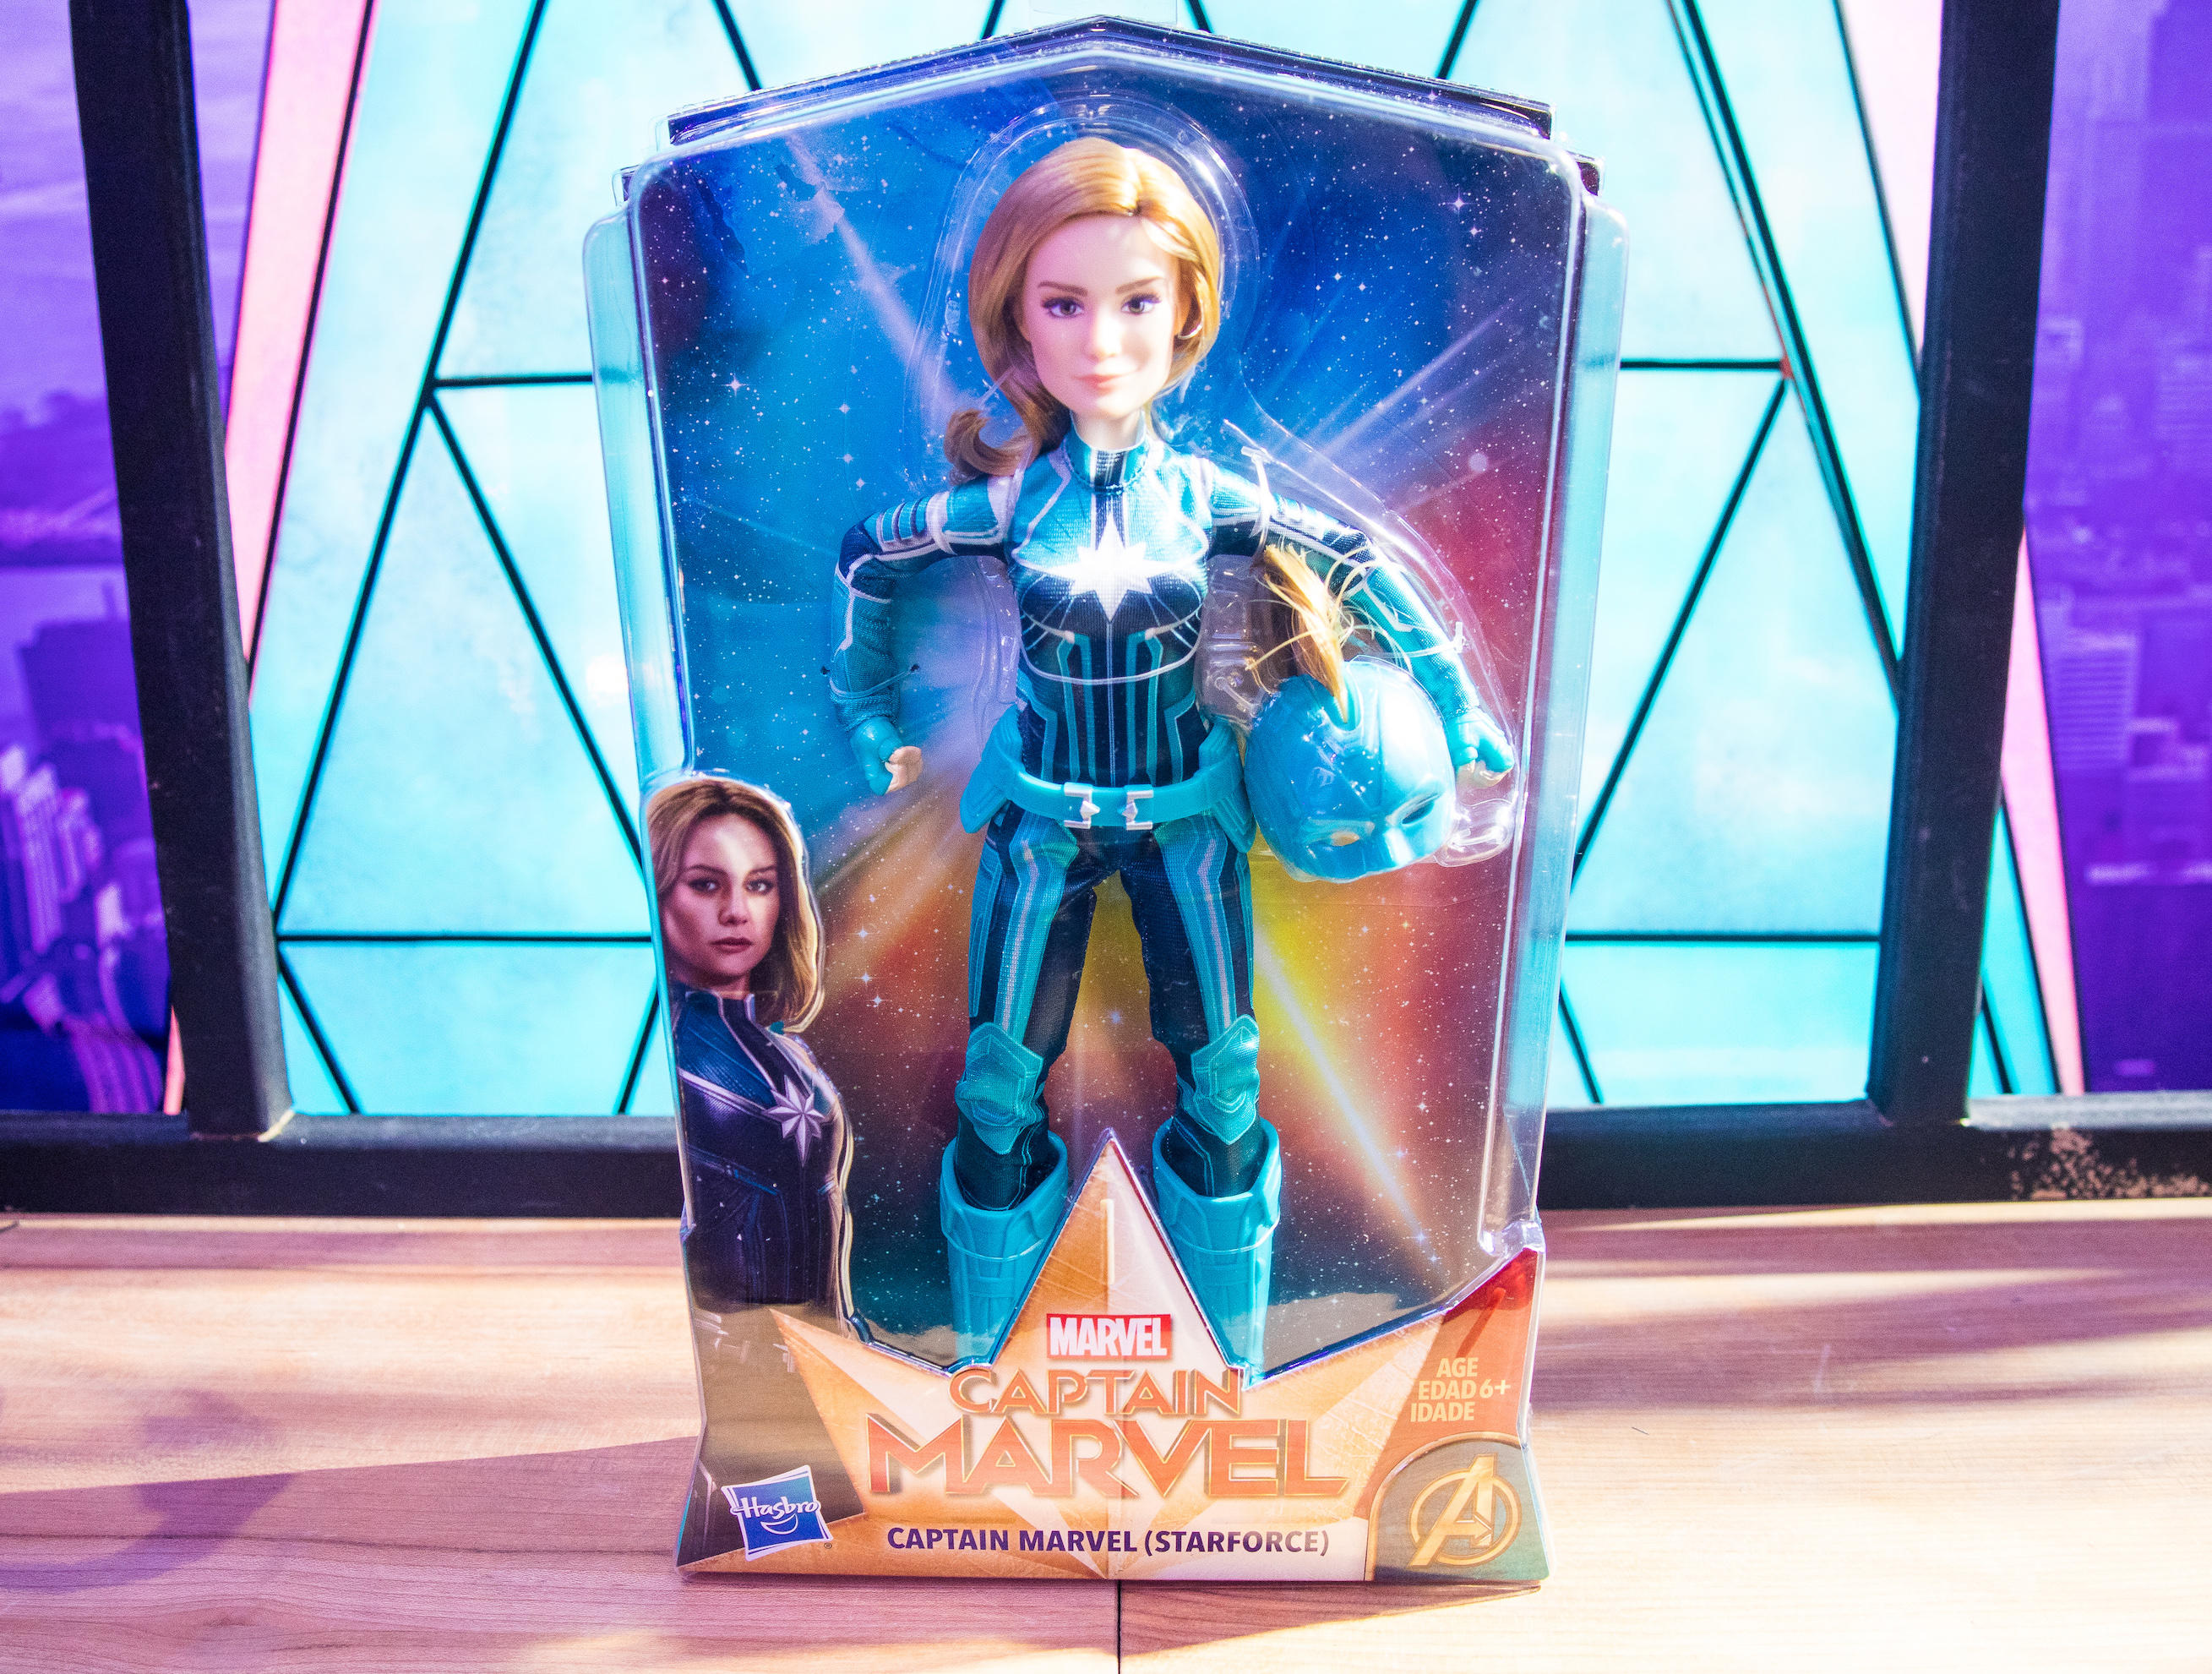 CAPTAIN MARVEL STARFORCE SUPER HERO DOLL